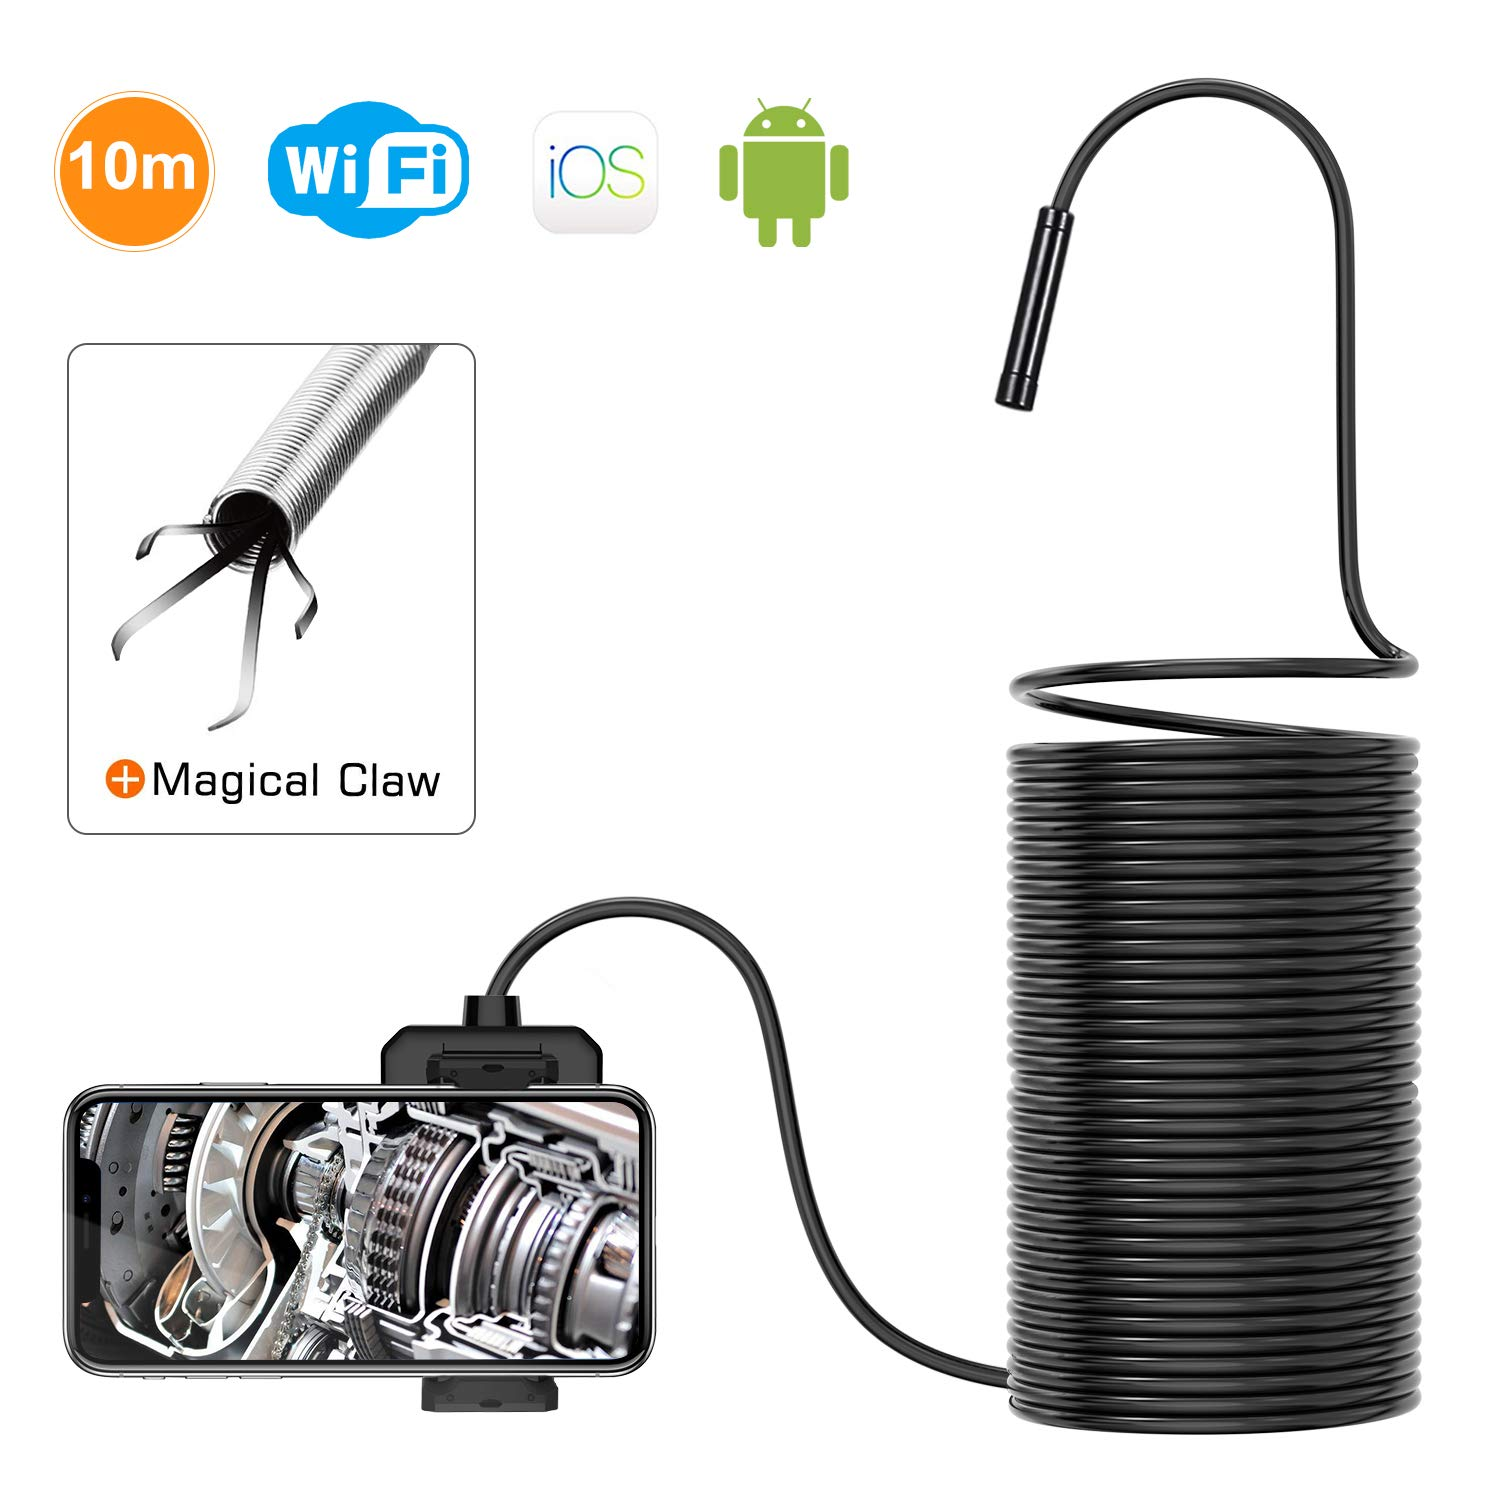 DEPSTECH 1200P Wireless Endoscope, 2.0 MP HD WiFi Borescope Inspection Camera, 16 inch Focal Distance Snake Camera with Phone Holder and Magical Claw for Android & iOS Smartphone Tablet